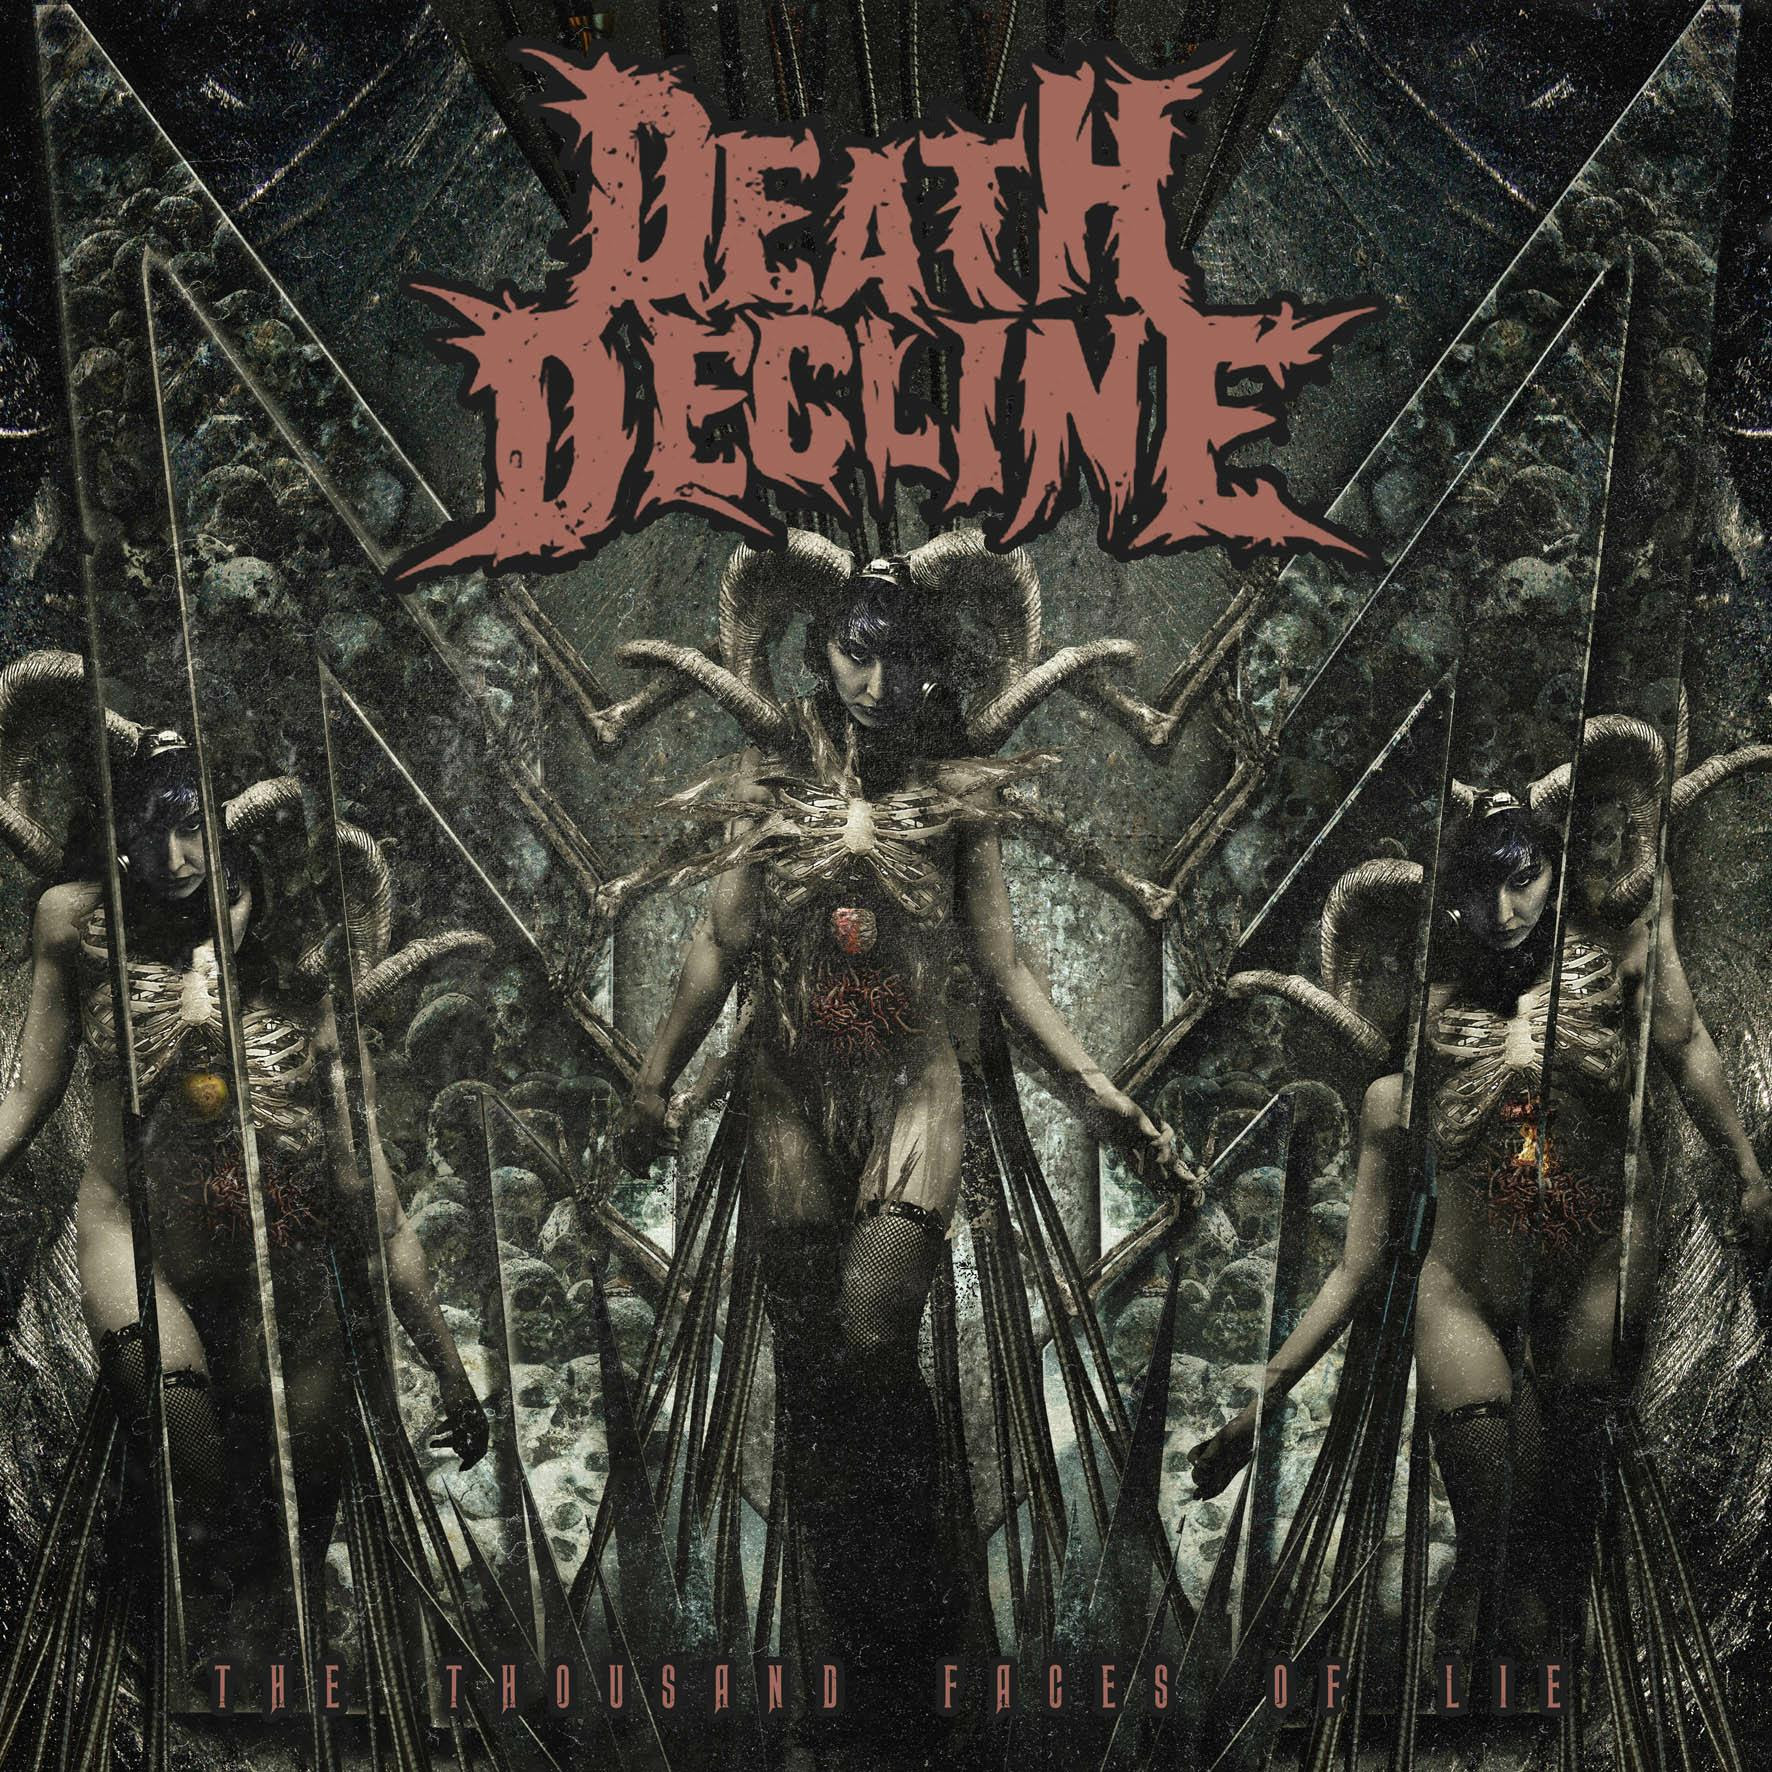 Death Decline, The Thousand Faces Of Lie